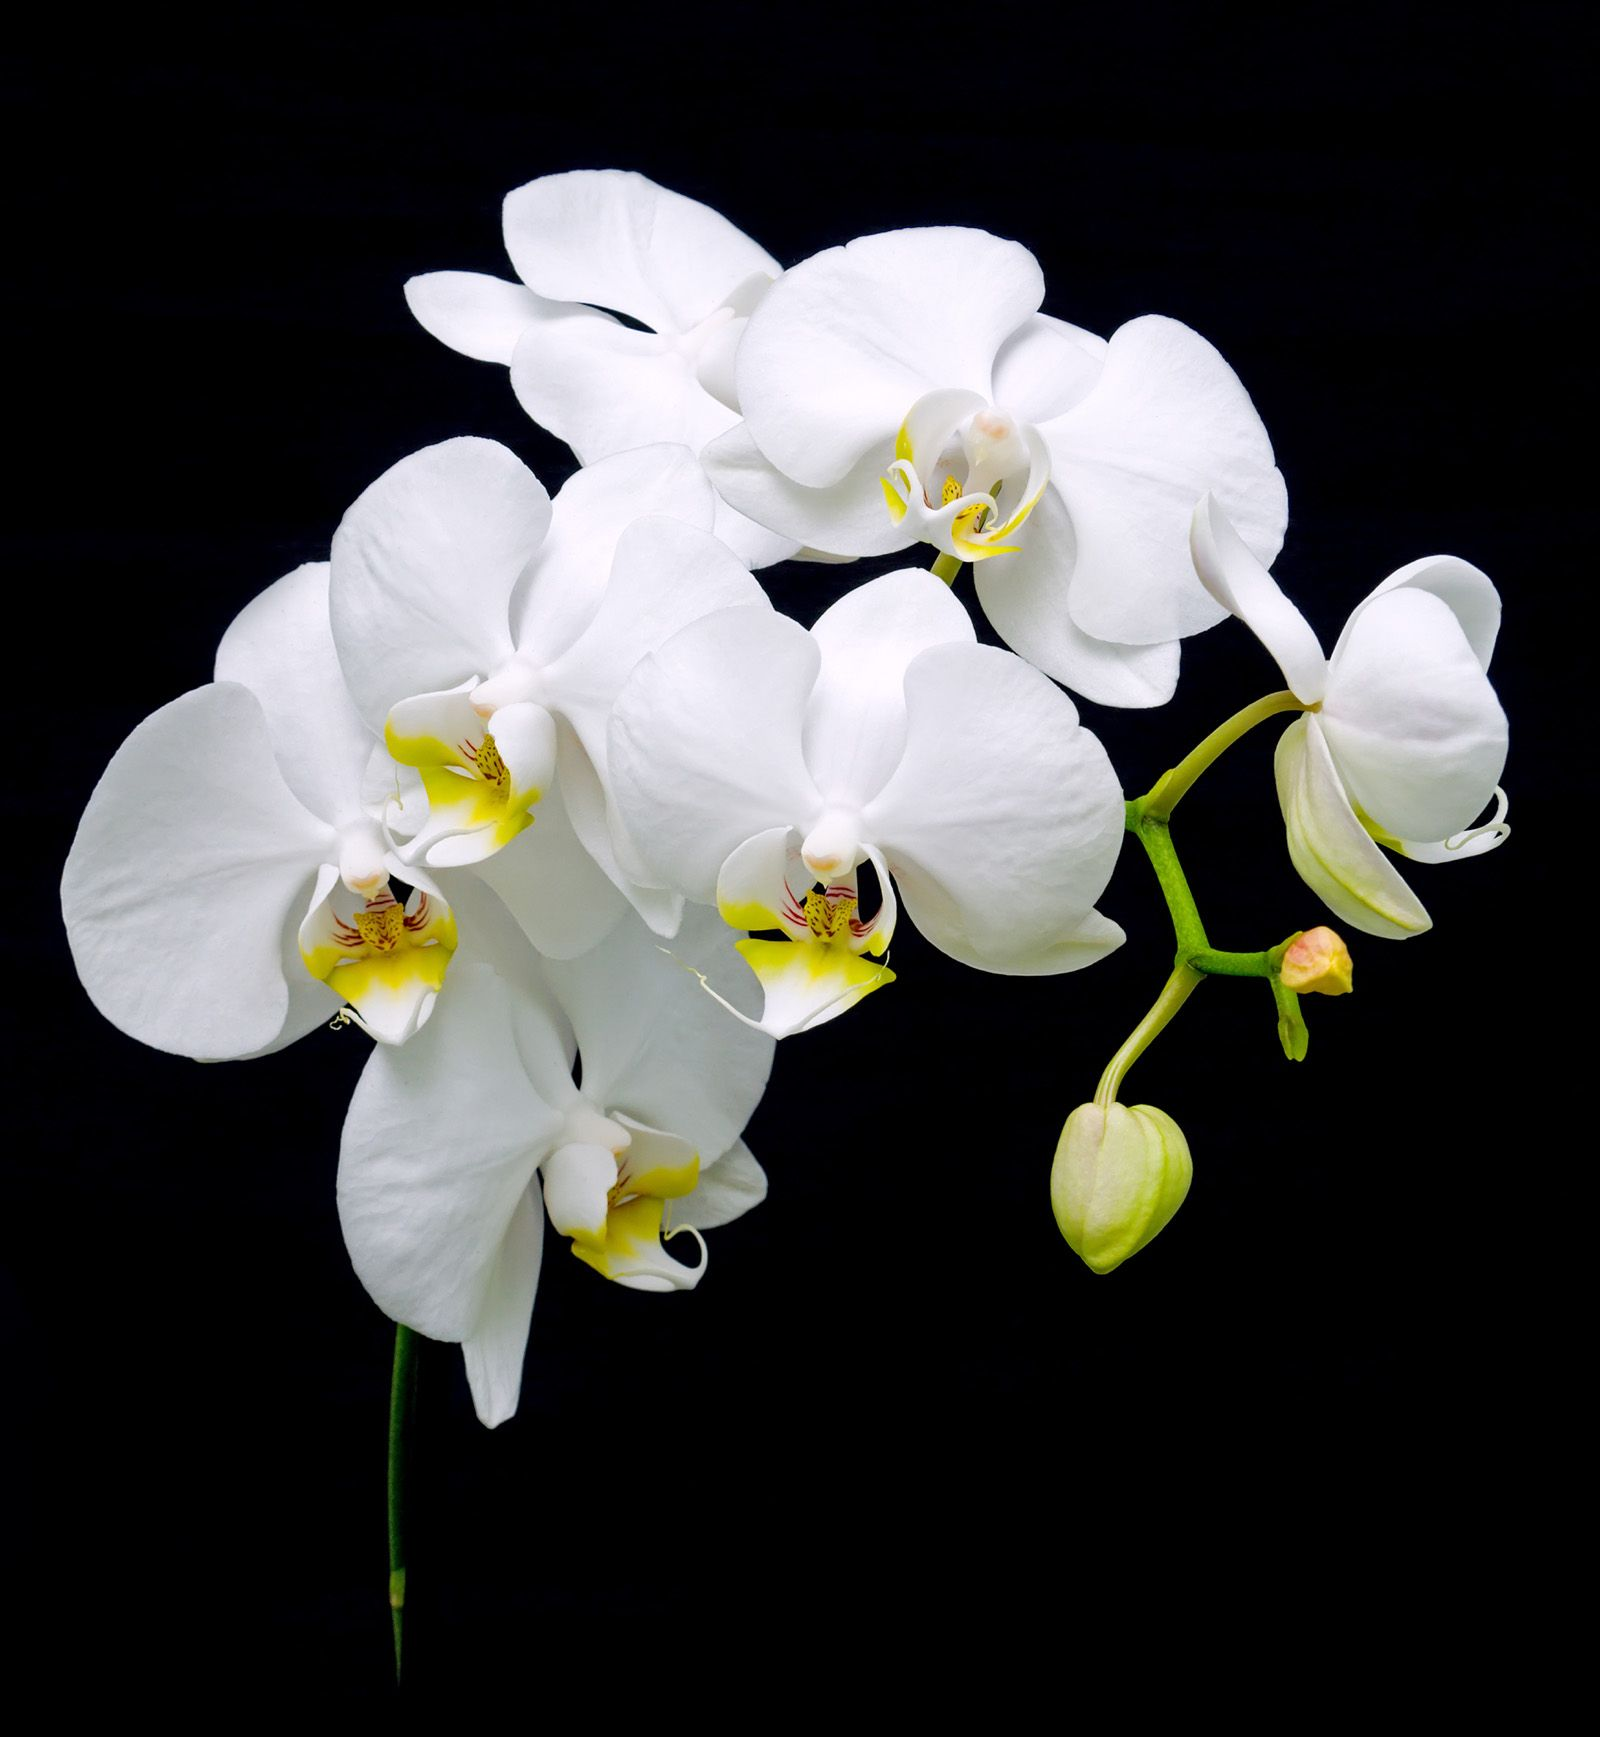 Black Background With White Orchid 52015 Flowers Photo Flowers White Orchids Orchids Orchid Wallpaper